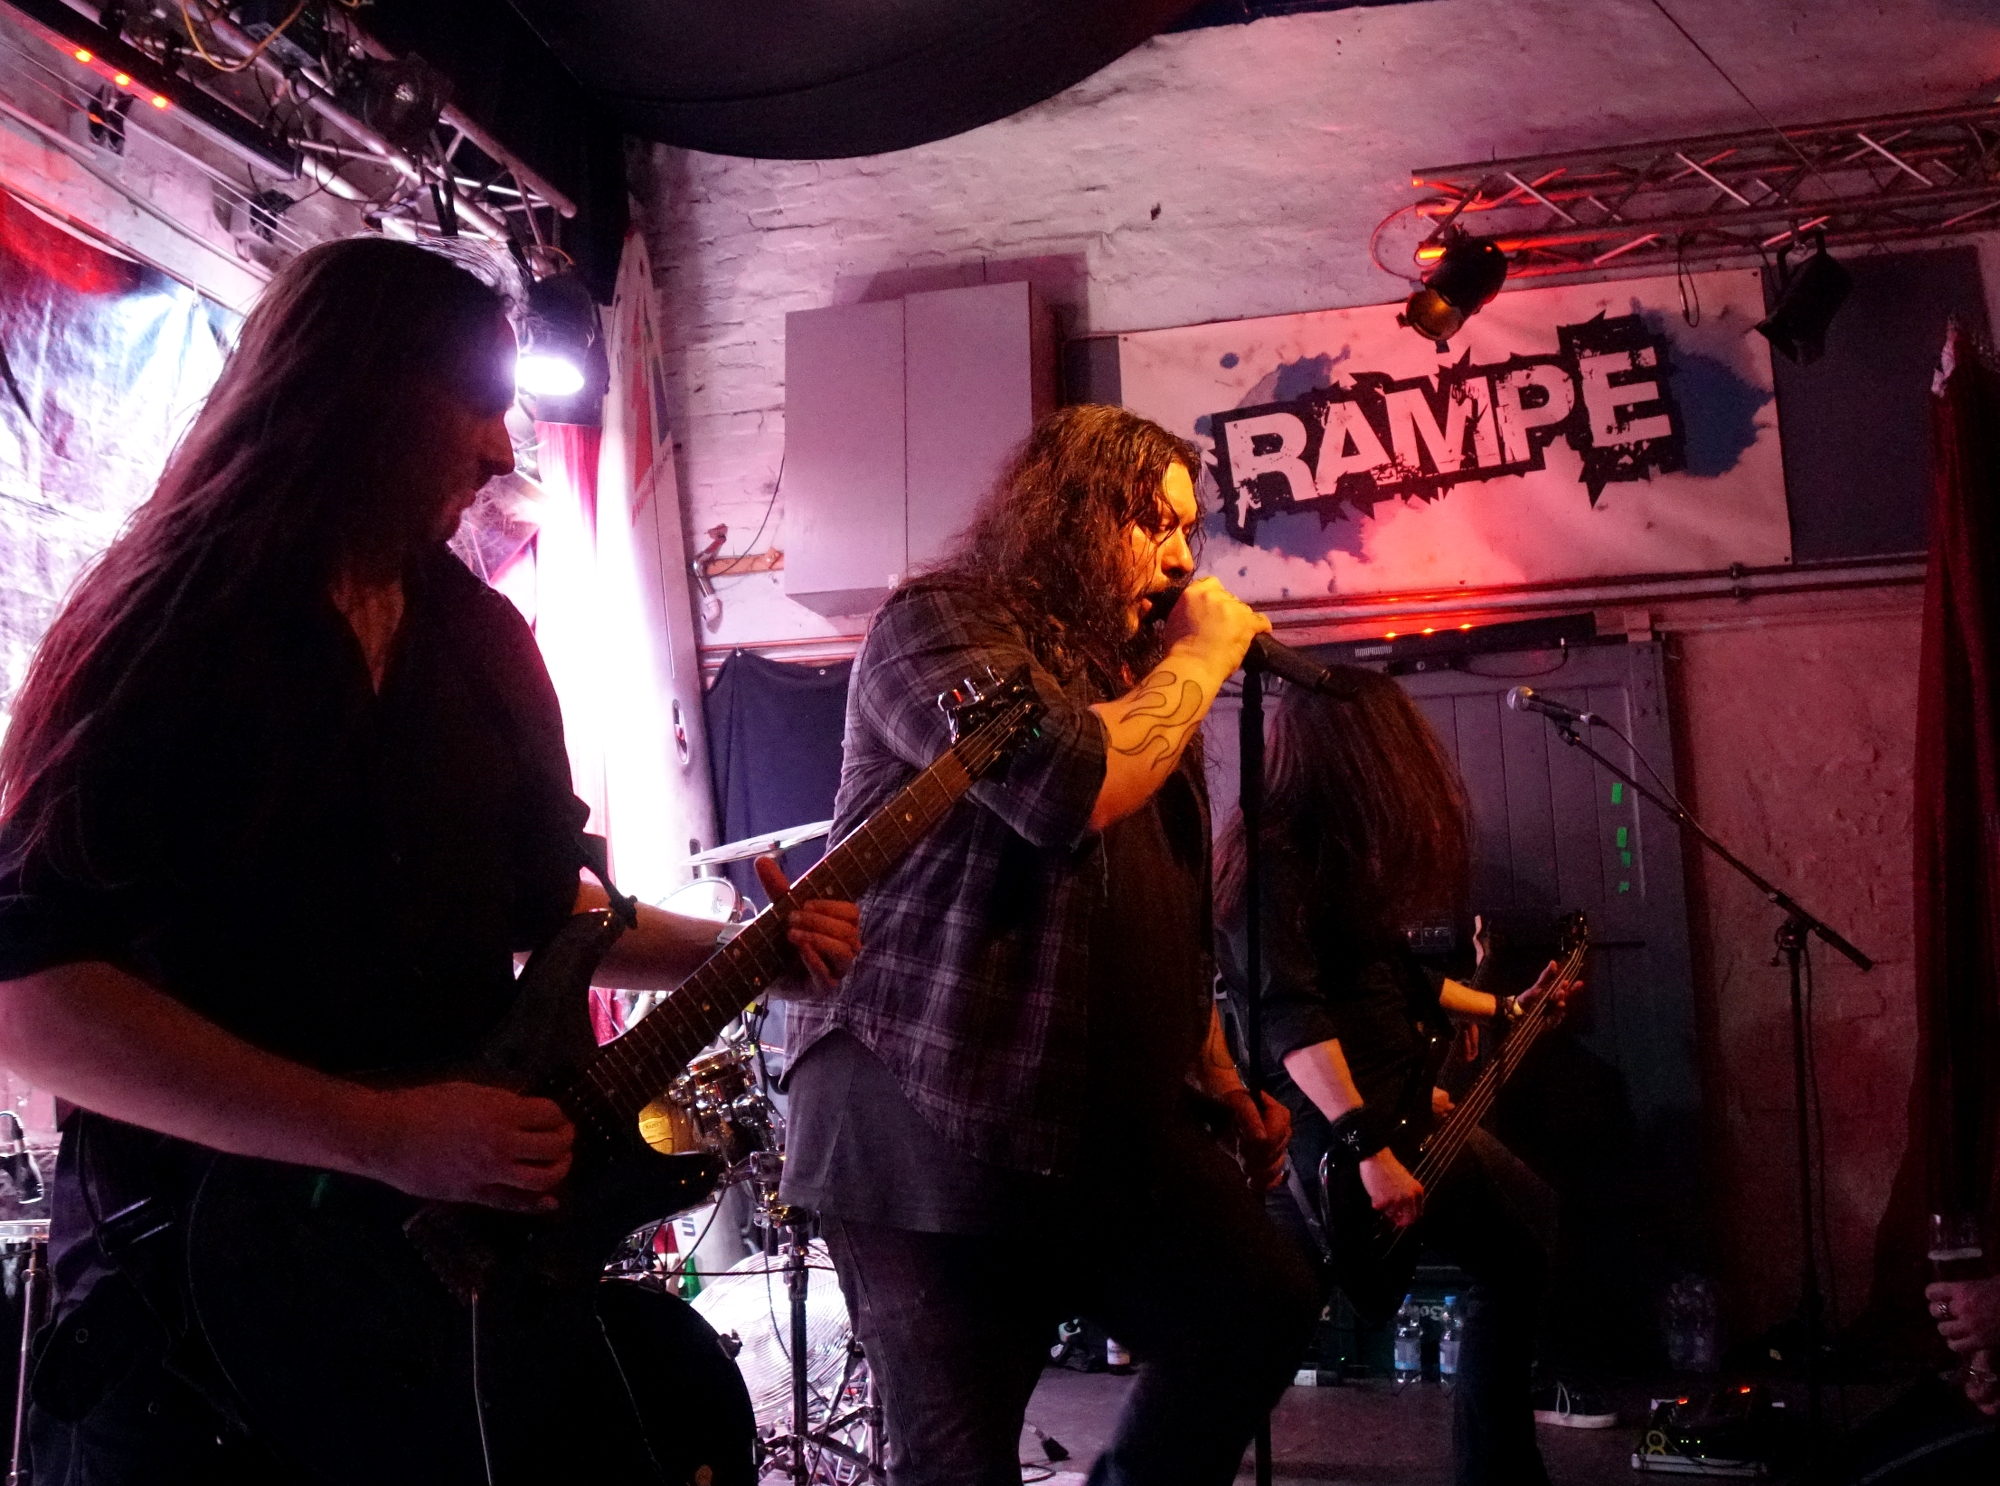 The-Very-End-live-Kulturrampe-Krefeld-2019-10